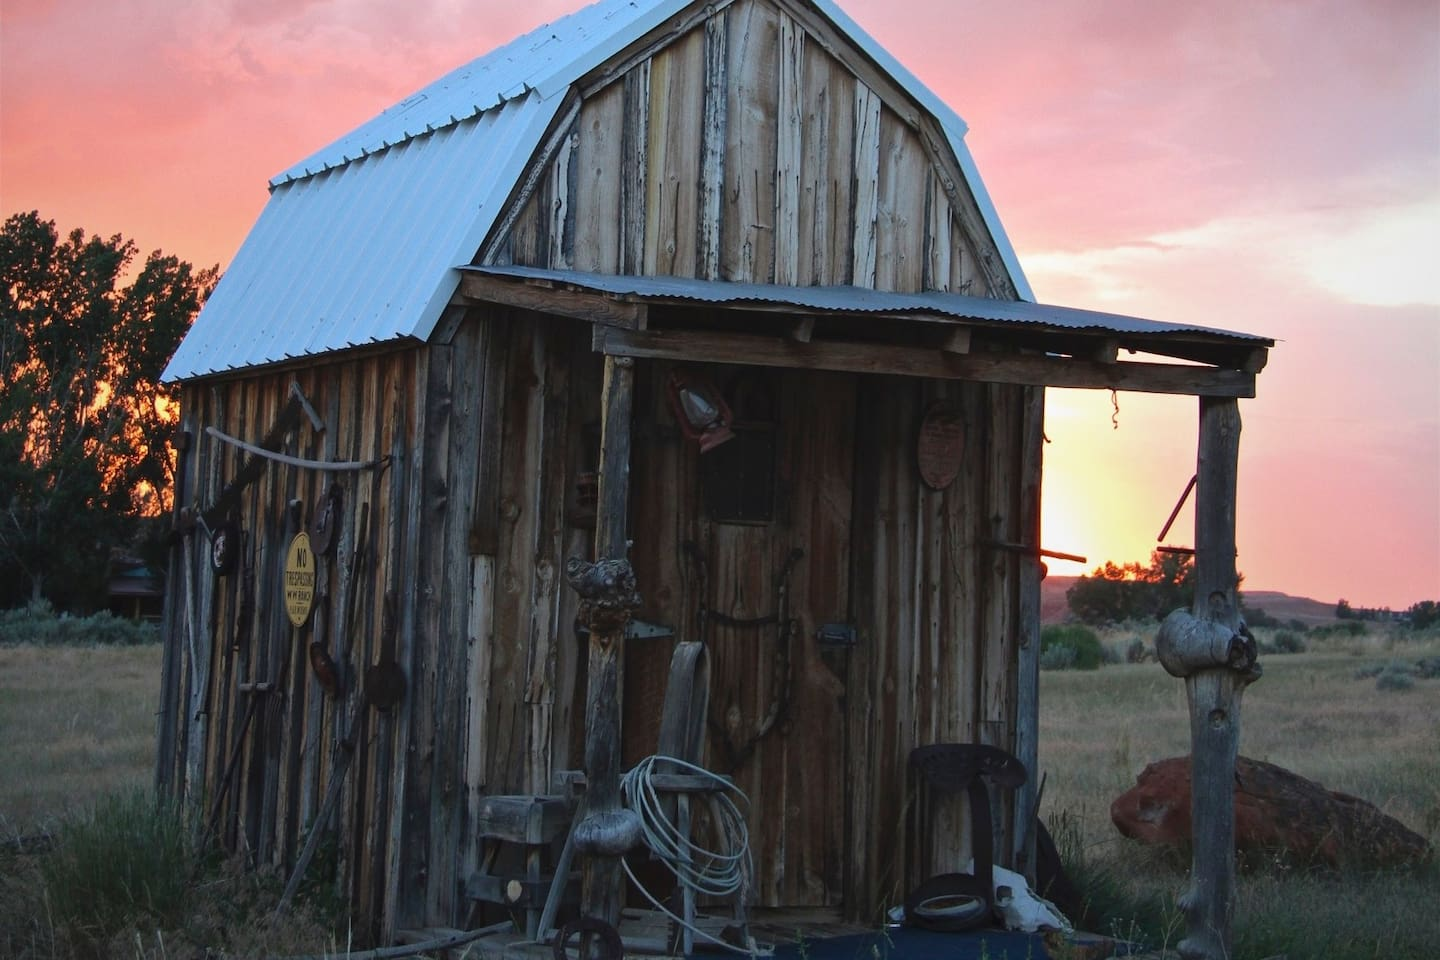 THE TACK SHED / BARN, CUTE AND COZY